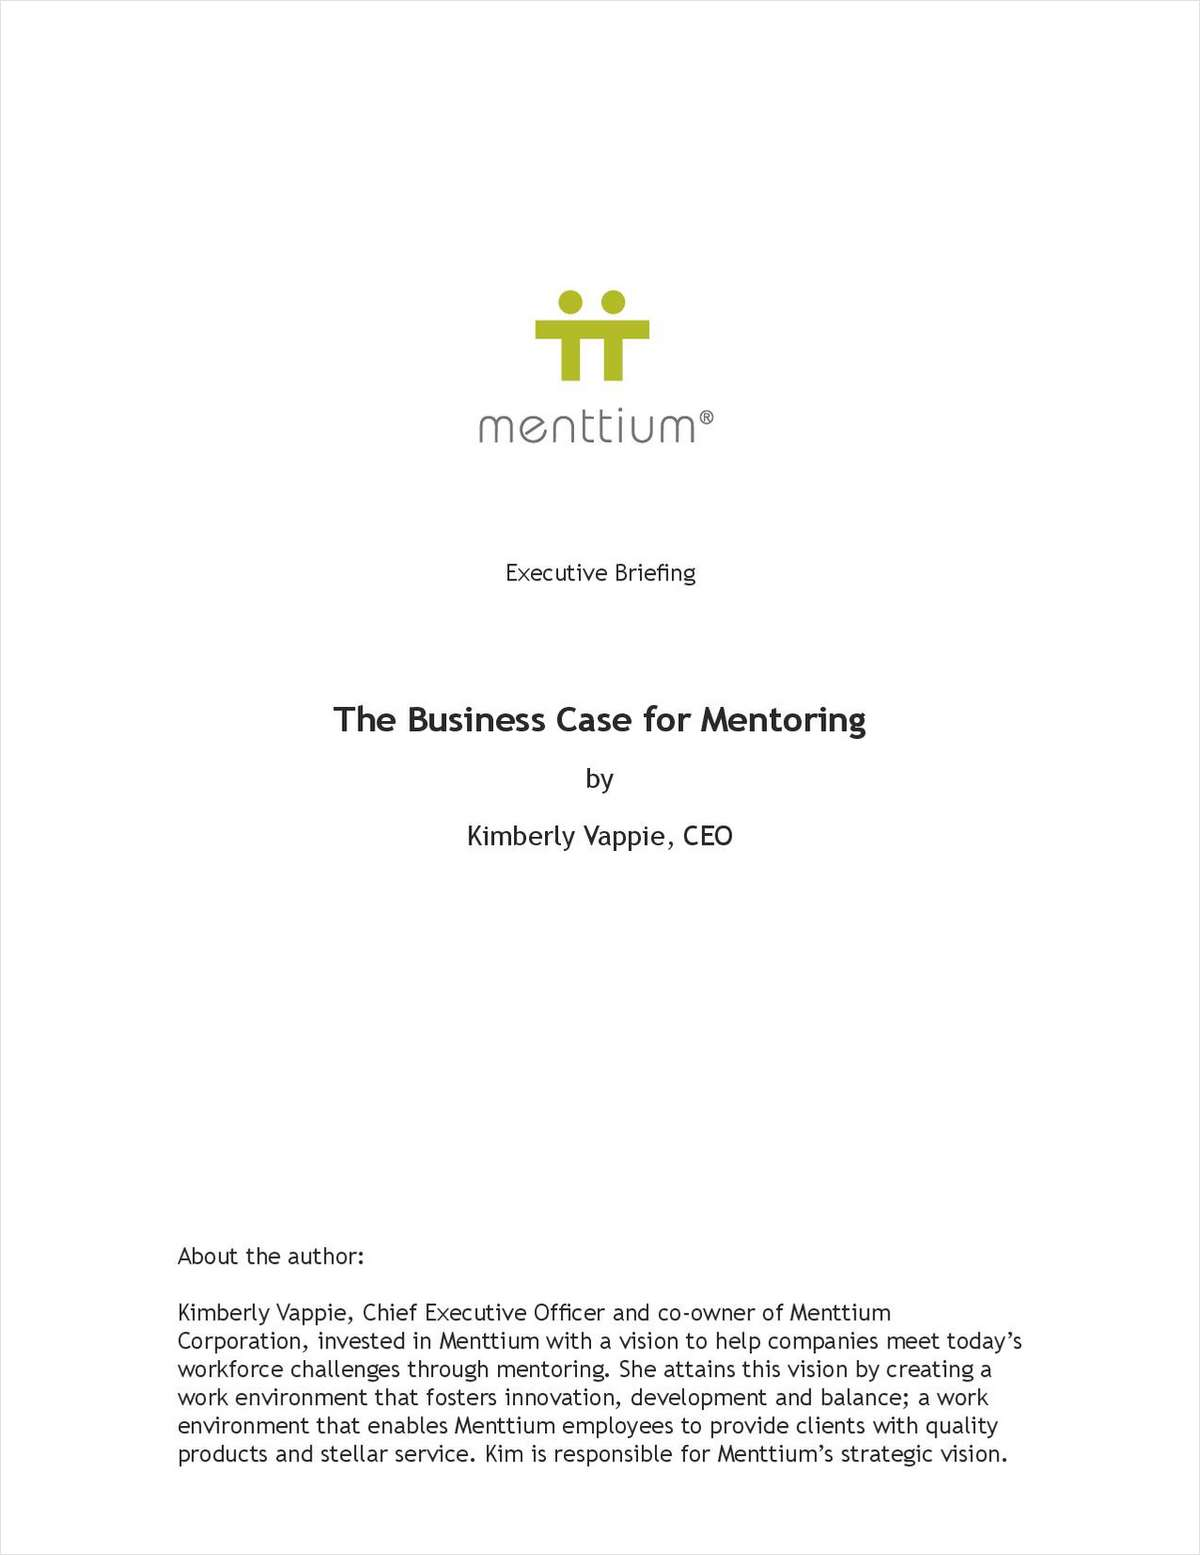 Business Case for Mentoring: Tangible Benefits Executives Should Understand